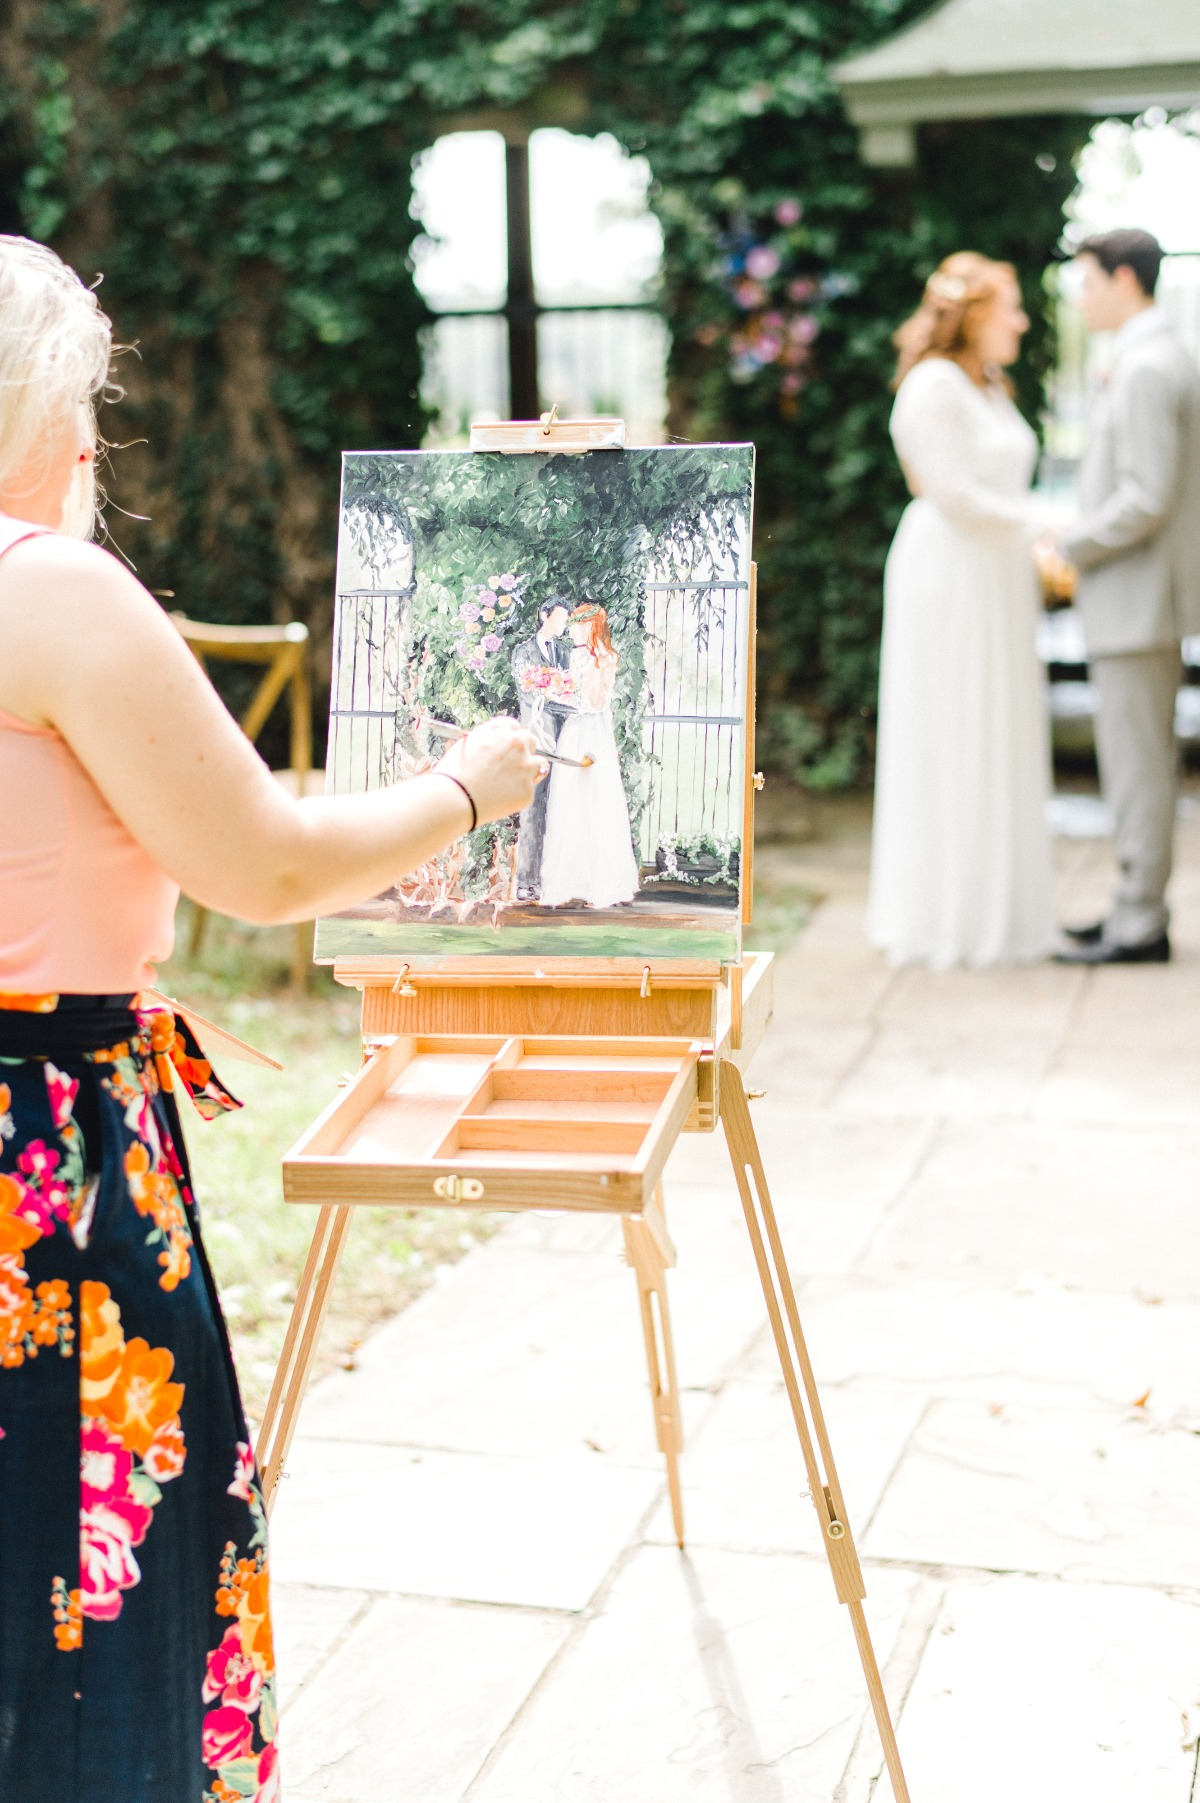 Live painting of your ceremony